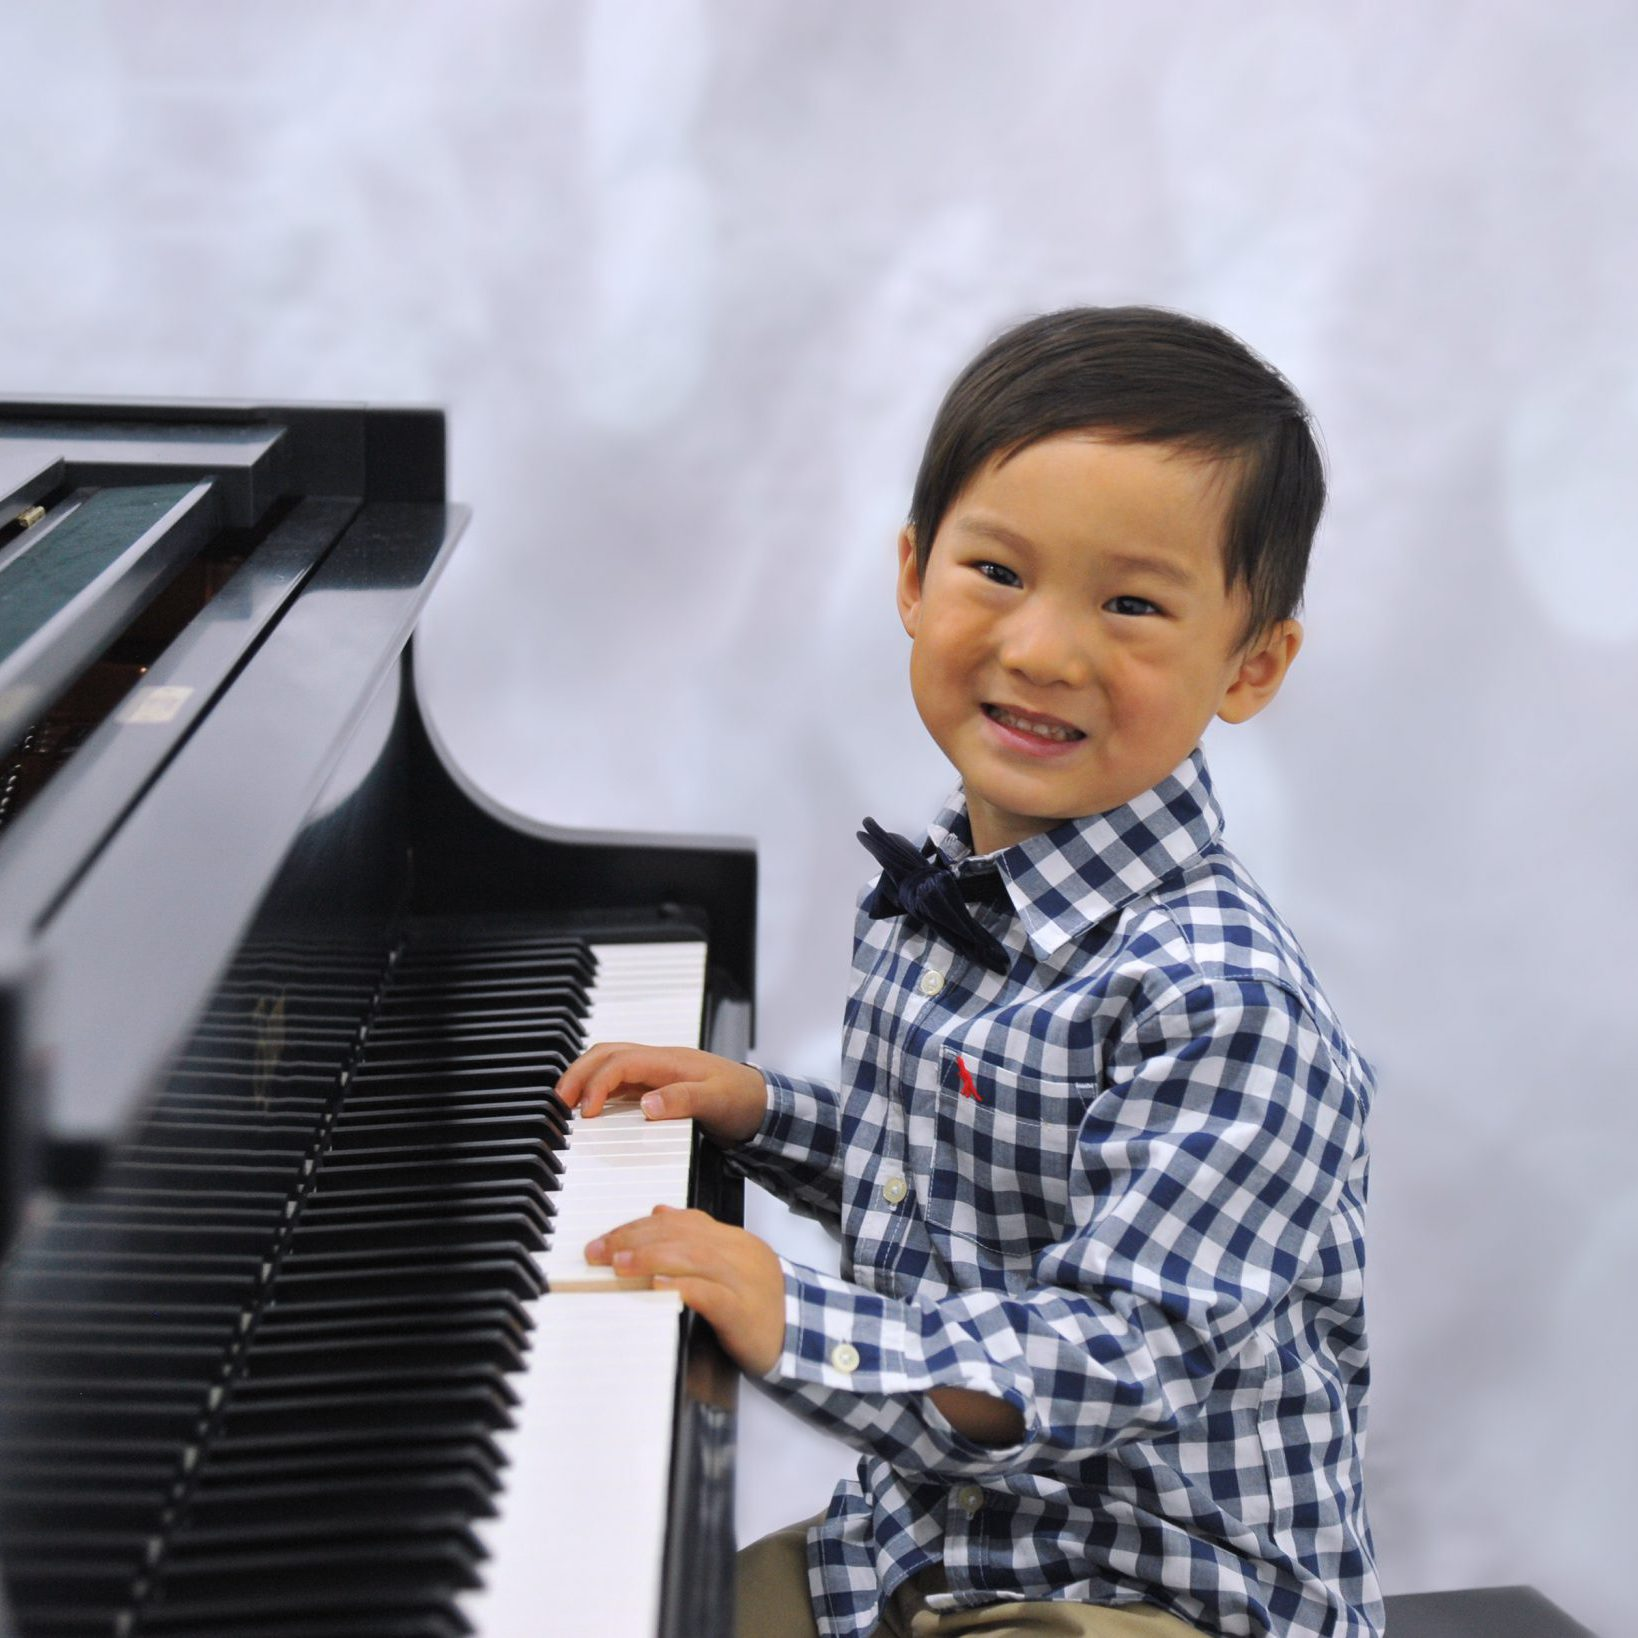 Piano Lessons & Keyboard Lessons